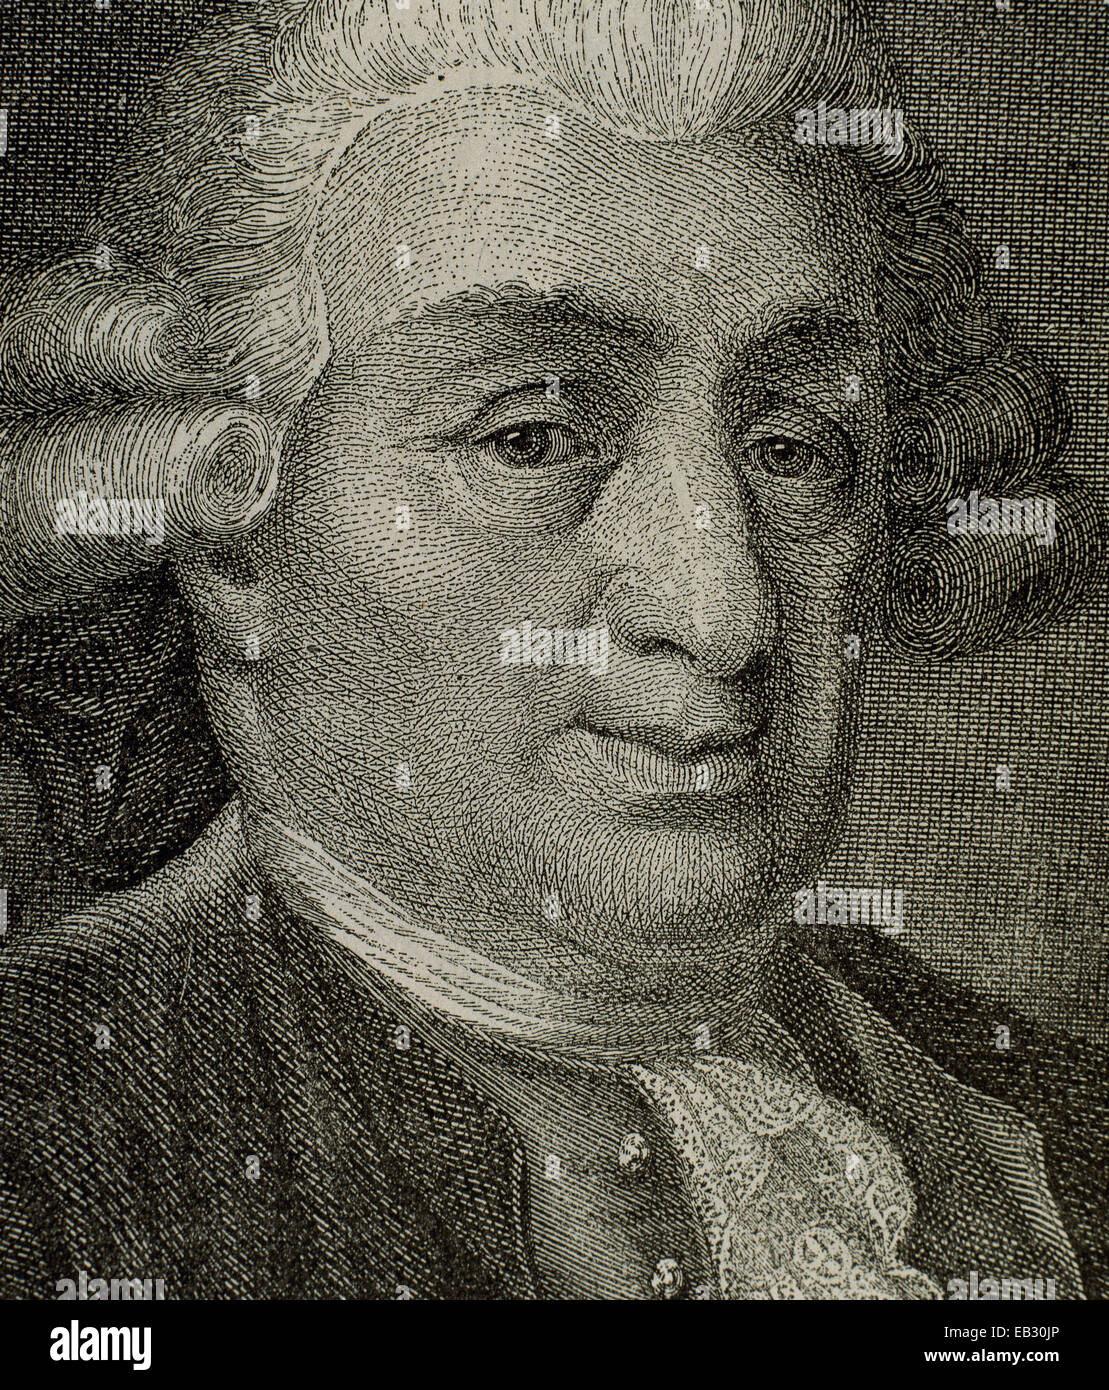 Carlo Goldoni (1707-1793). Italian playwright and librettist from the Republic of Venice. Engraving. 19th century. - Stock Image